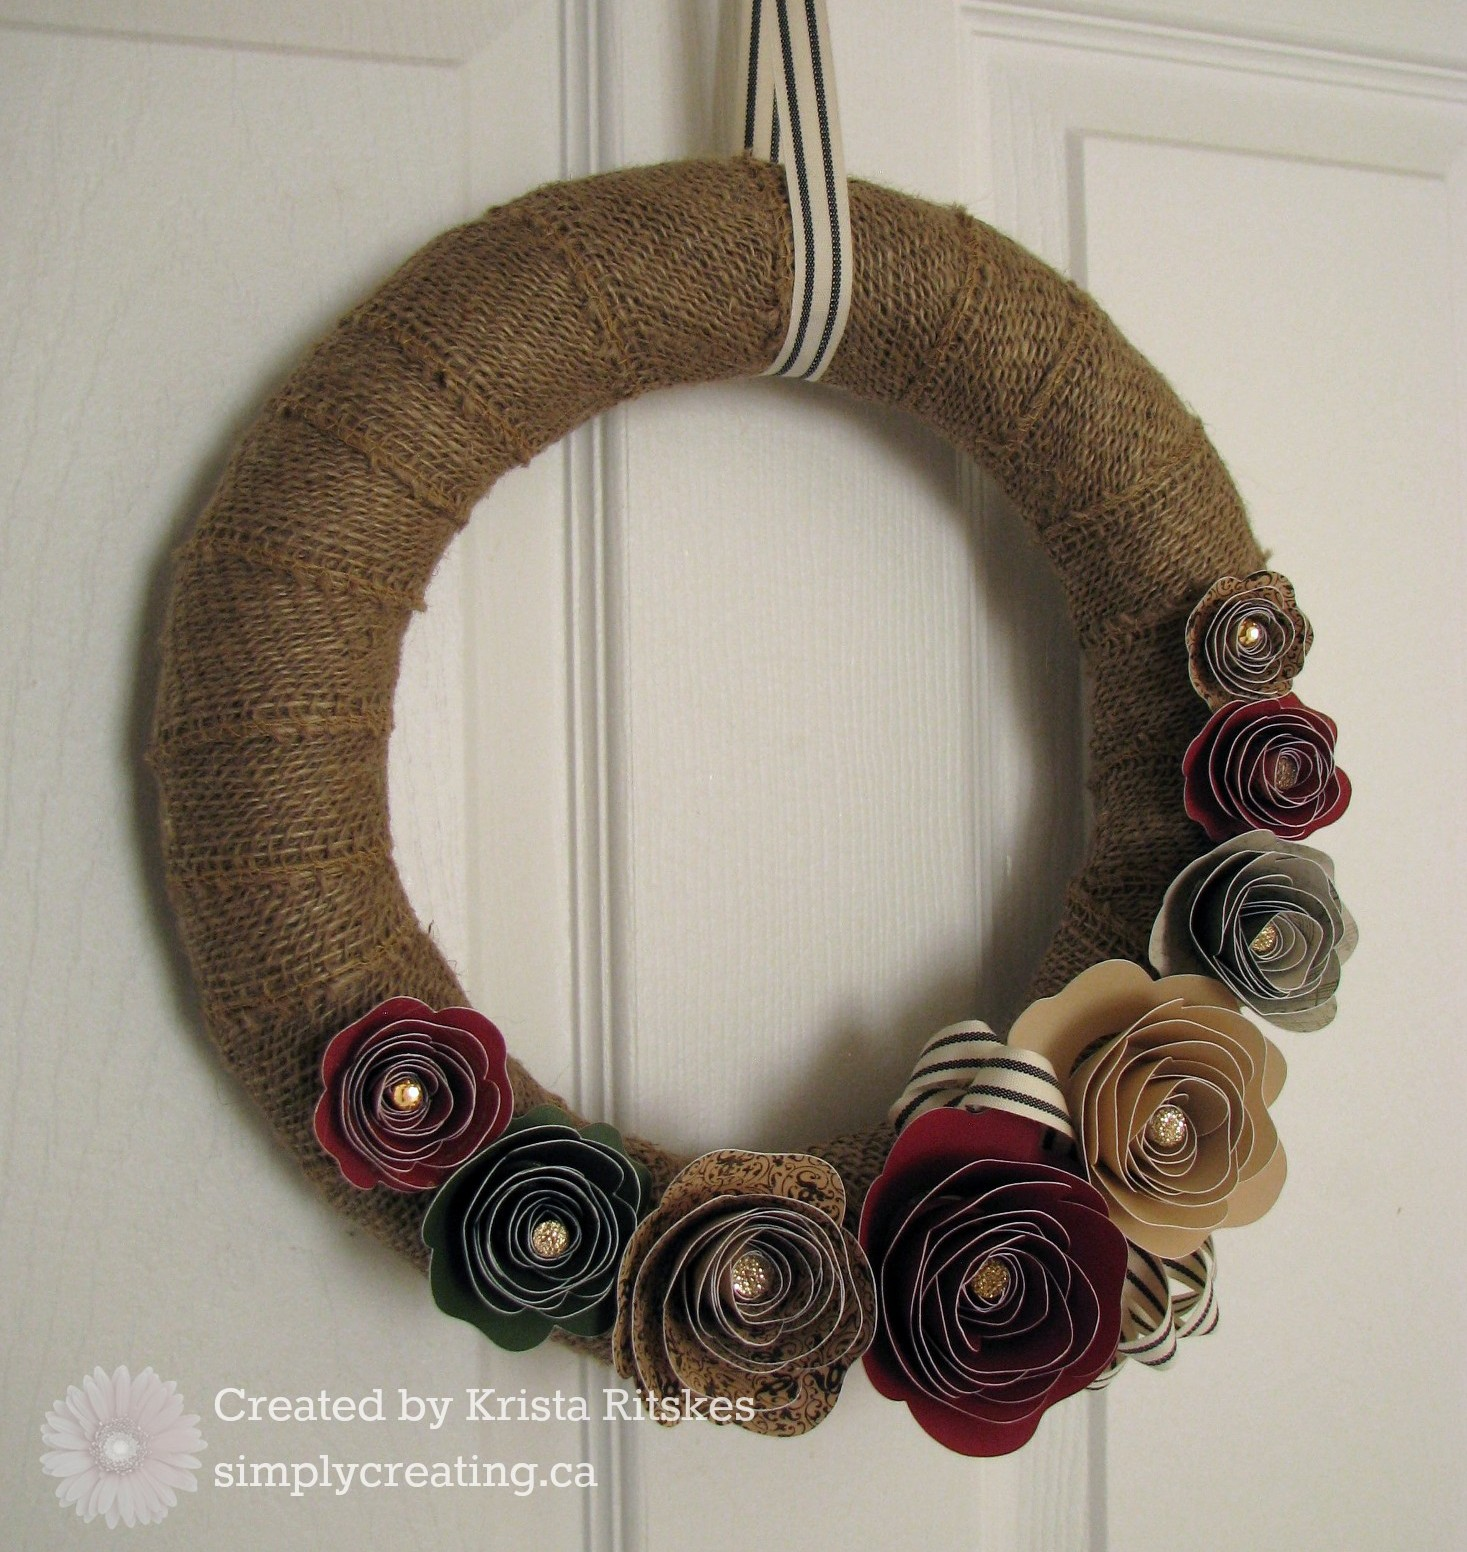 Yuletide Carol Wreath